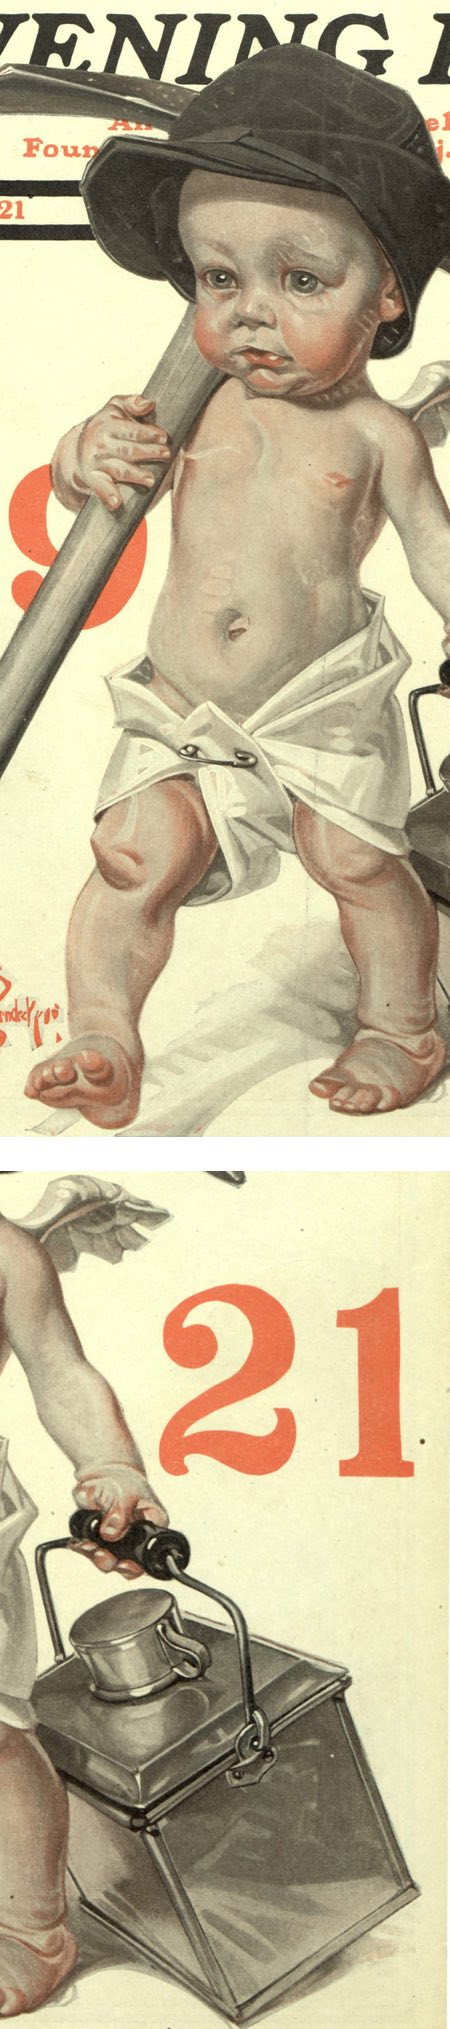 JC Leyendeckers Saturday Evening Post New Years Baby cover for 1921 (details)